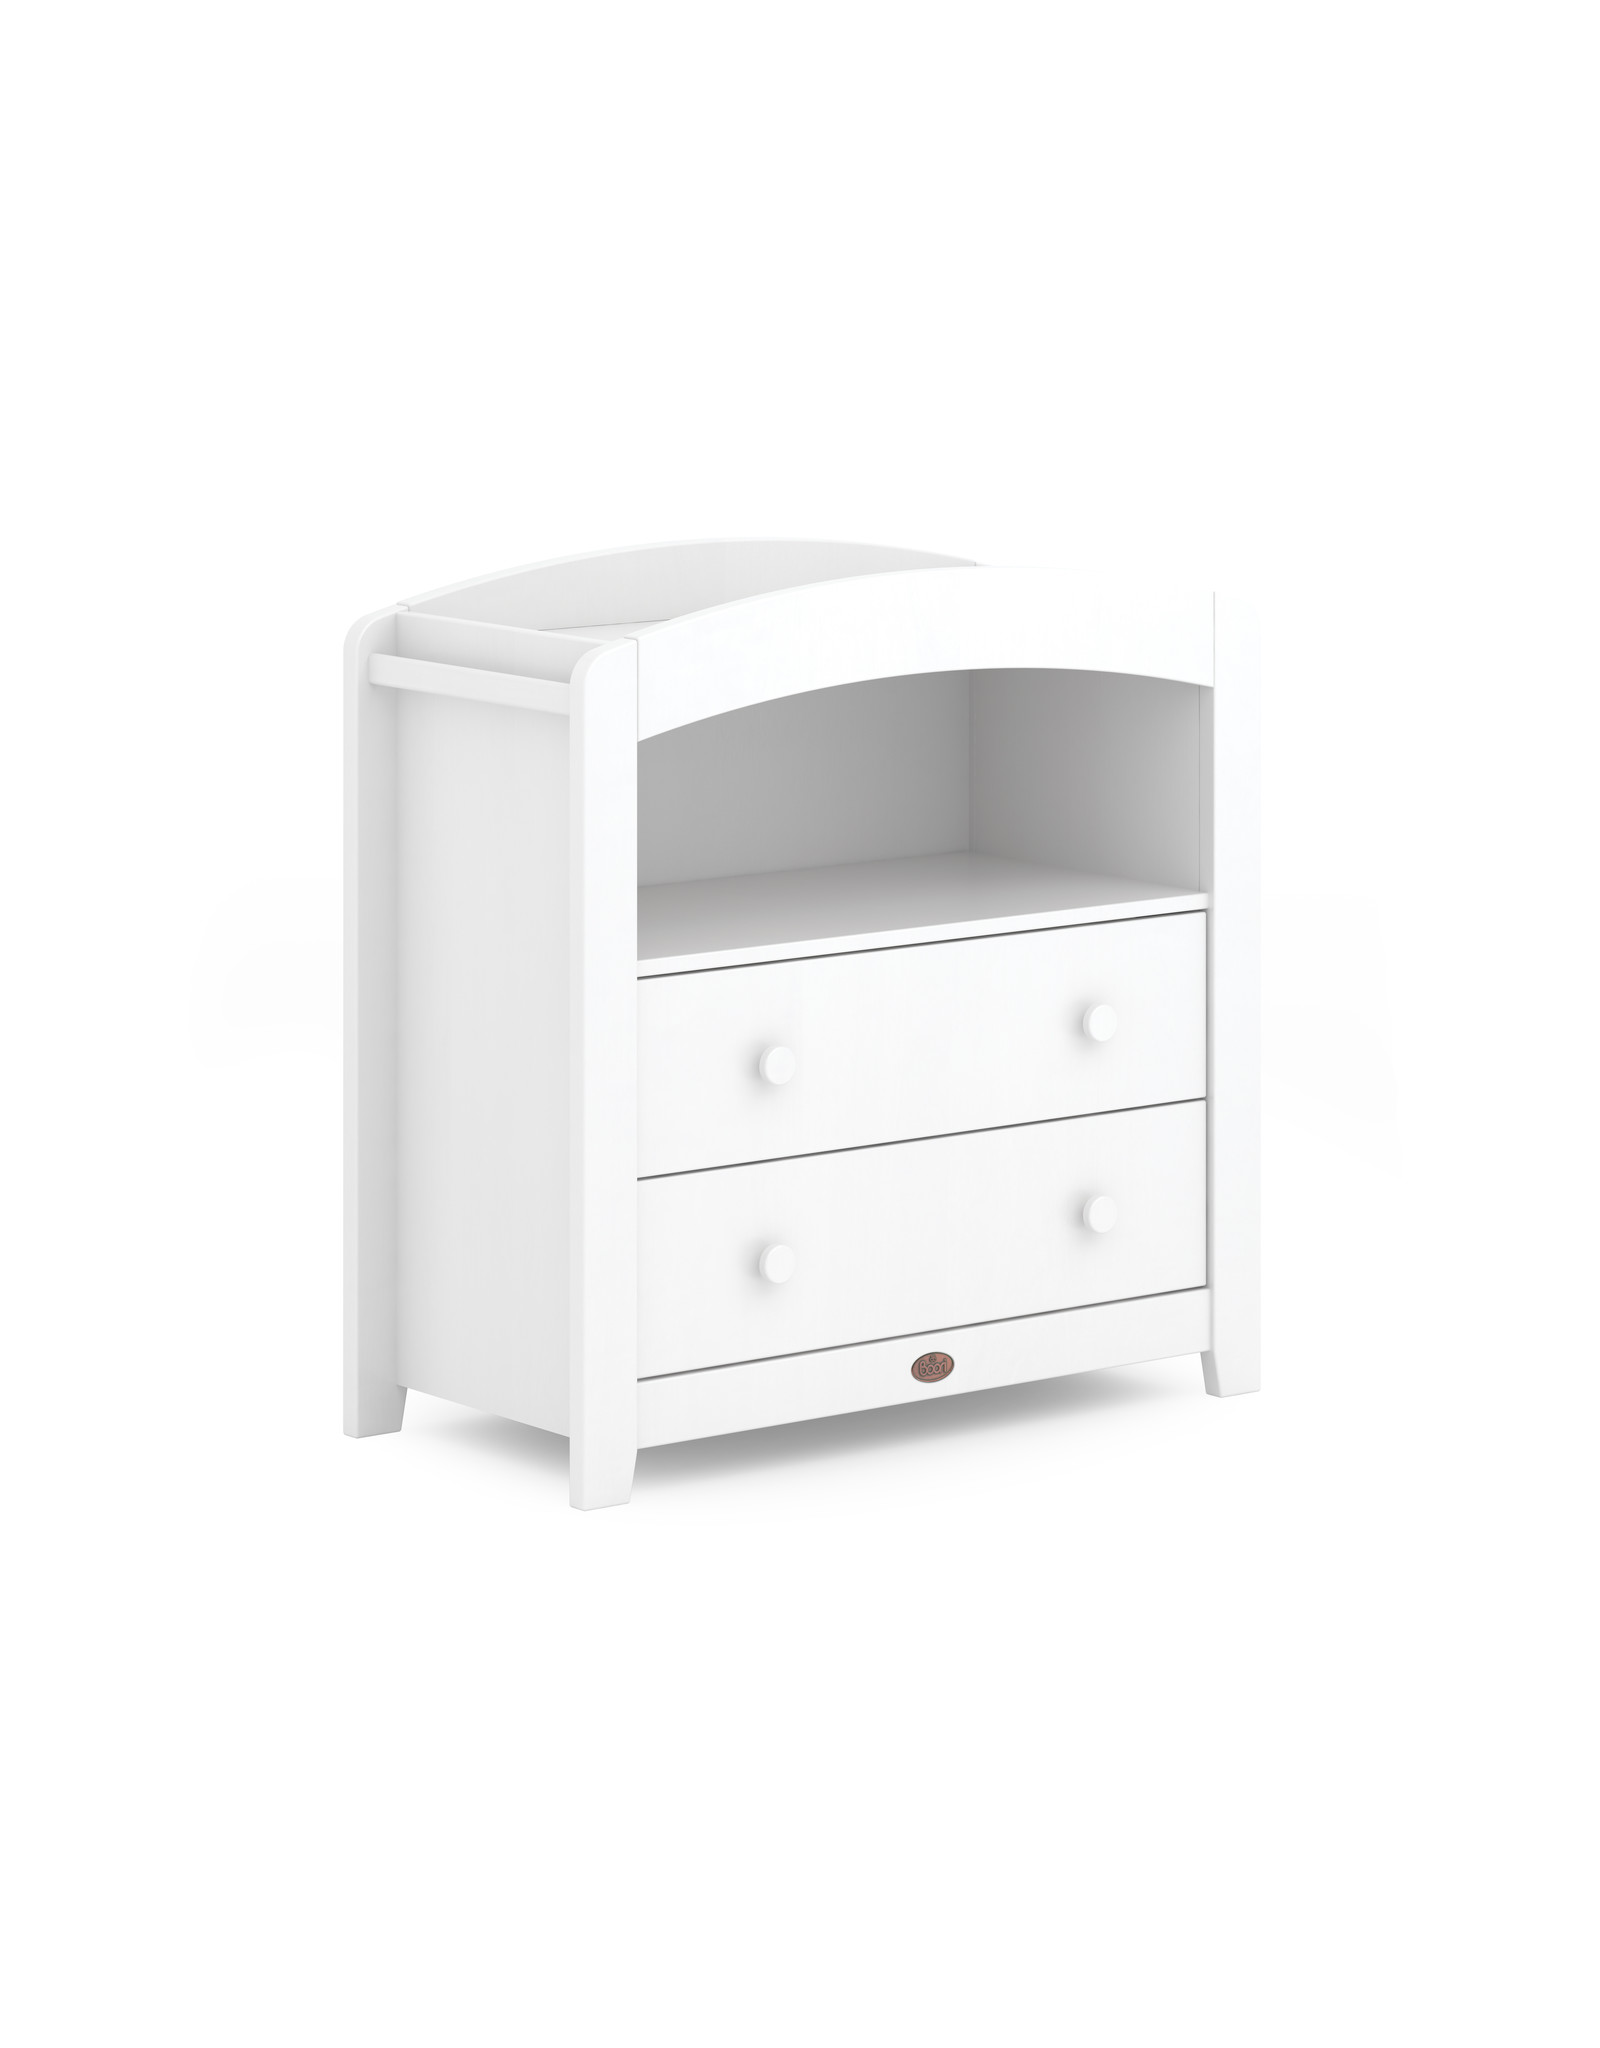 Boori Boori Curved Two Drawer Chest Changer - White